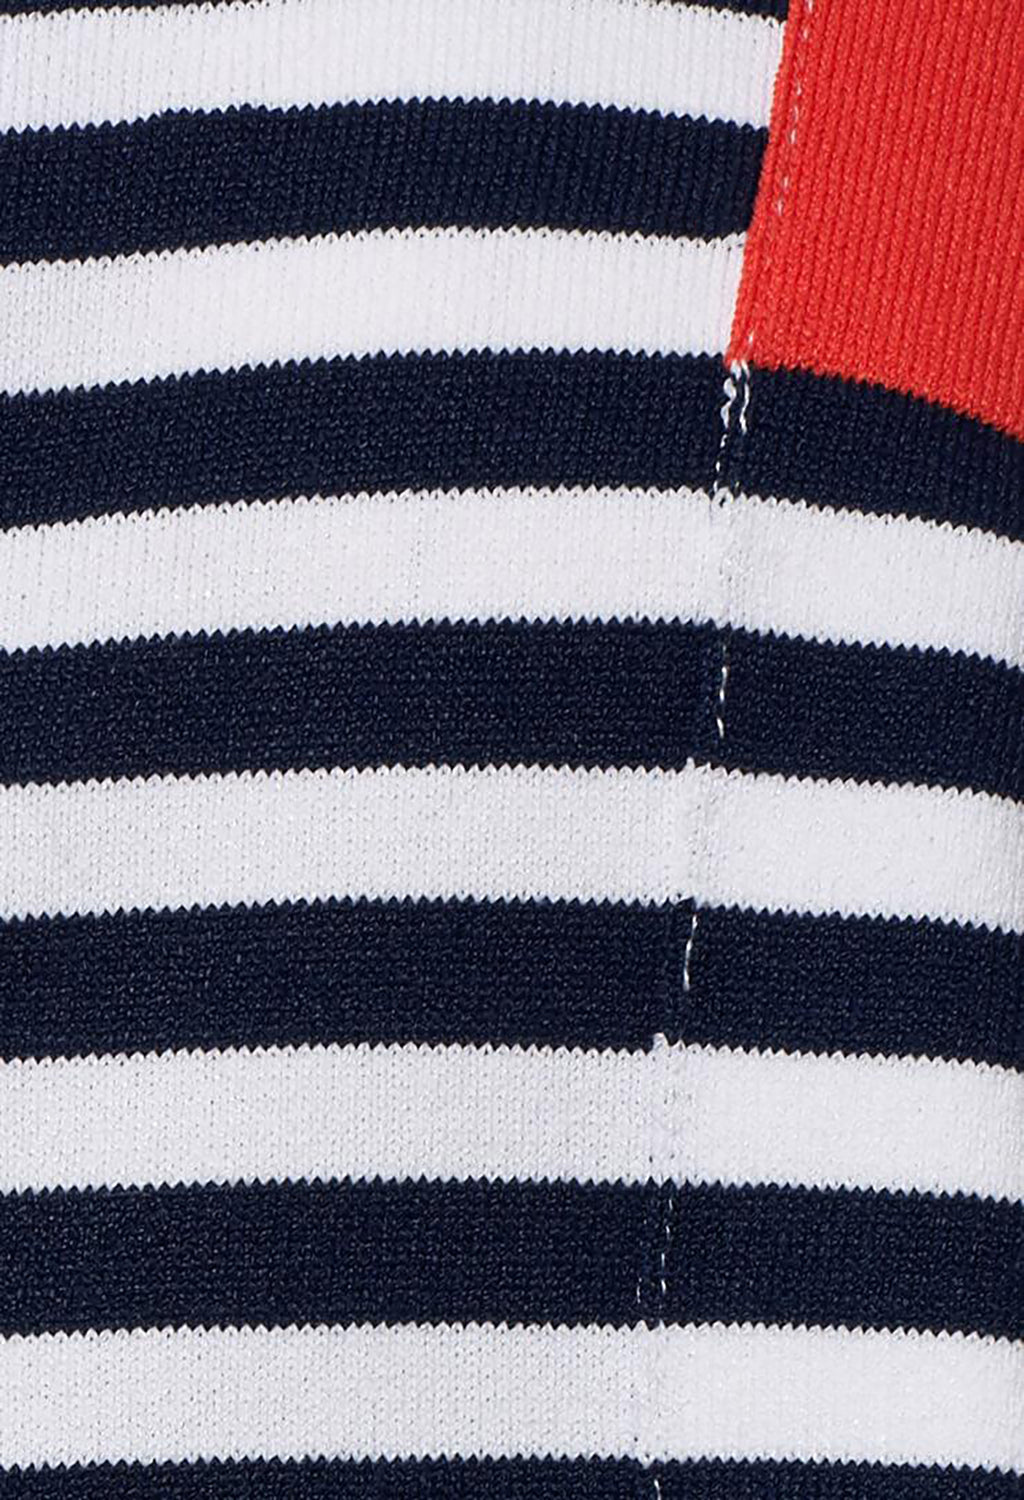 Oversized Top with Asymmetric Hem in Navy and Coral Stripe